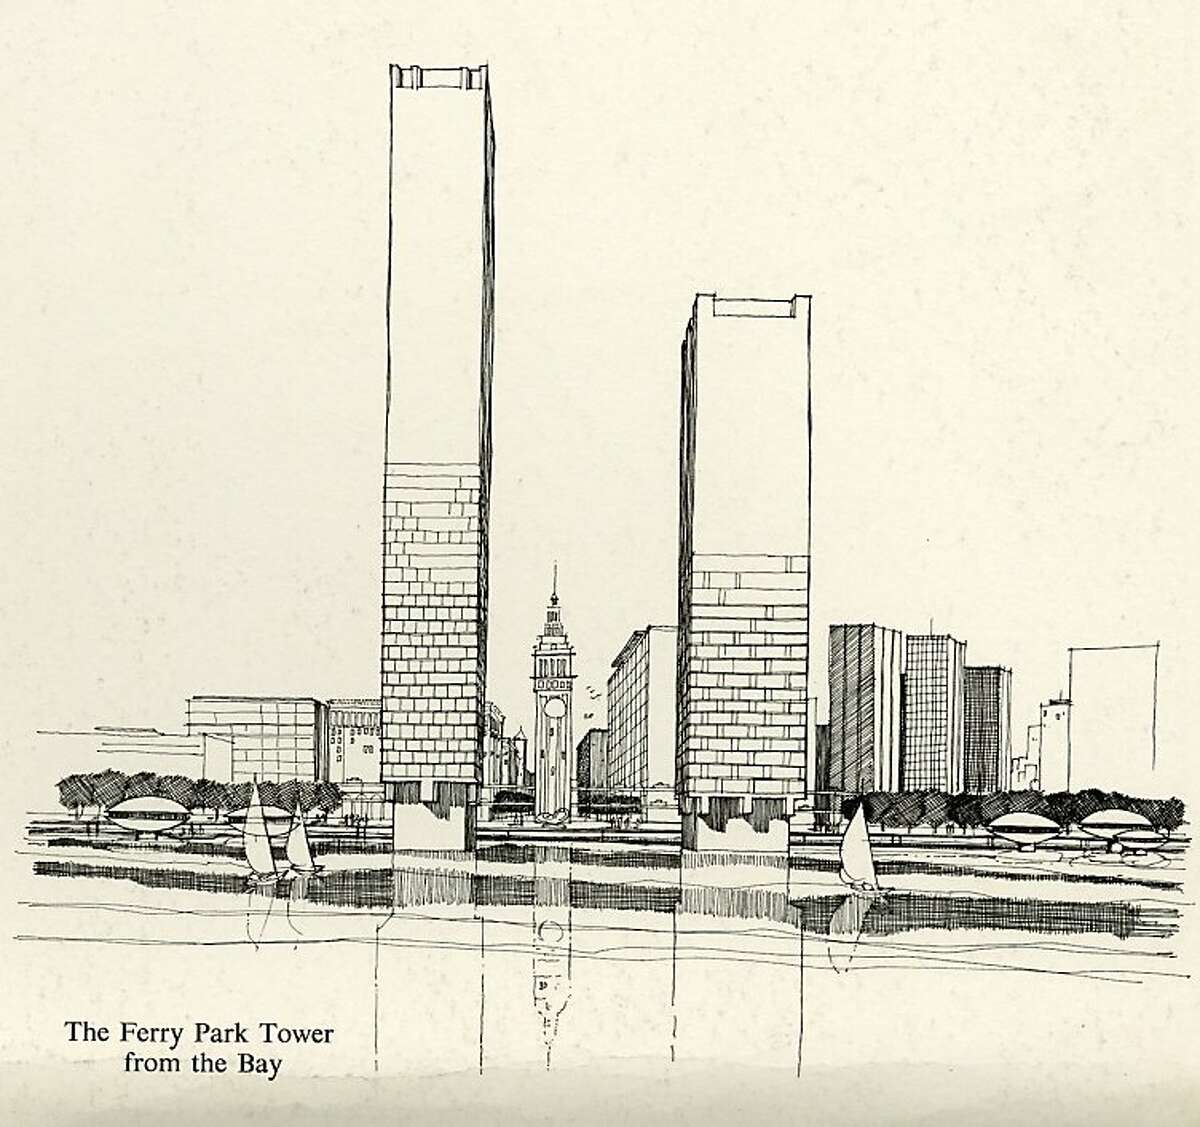 San Francisco's Downtown Plan in 1963 proposed to keep the Ferry Building's tower -- but shear off the wings of the landmark, wrap it in a plaza and put two new commercial towers on new piers in the bay.